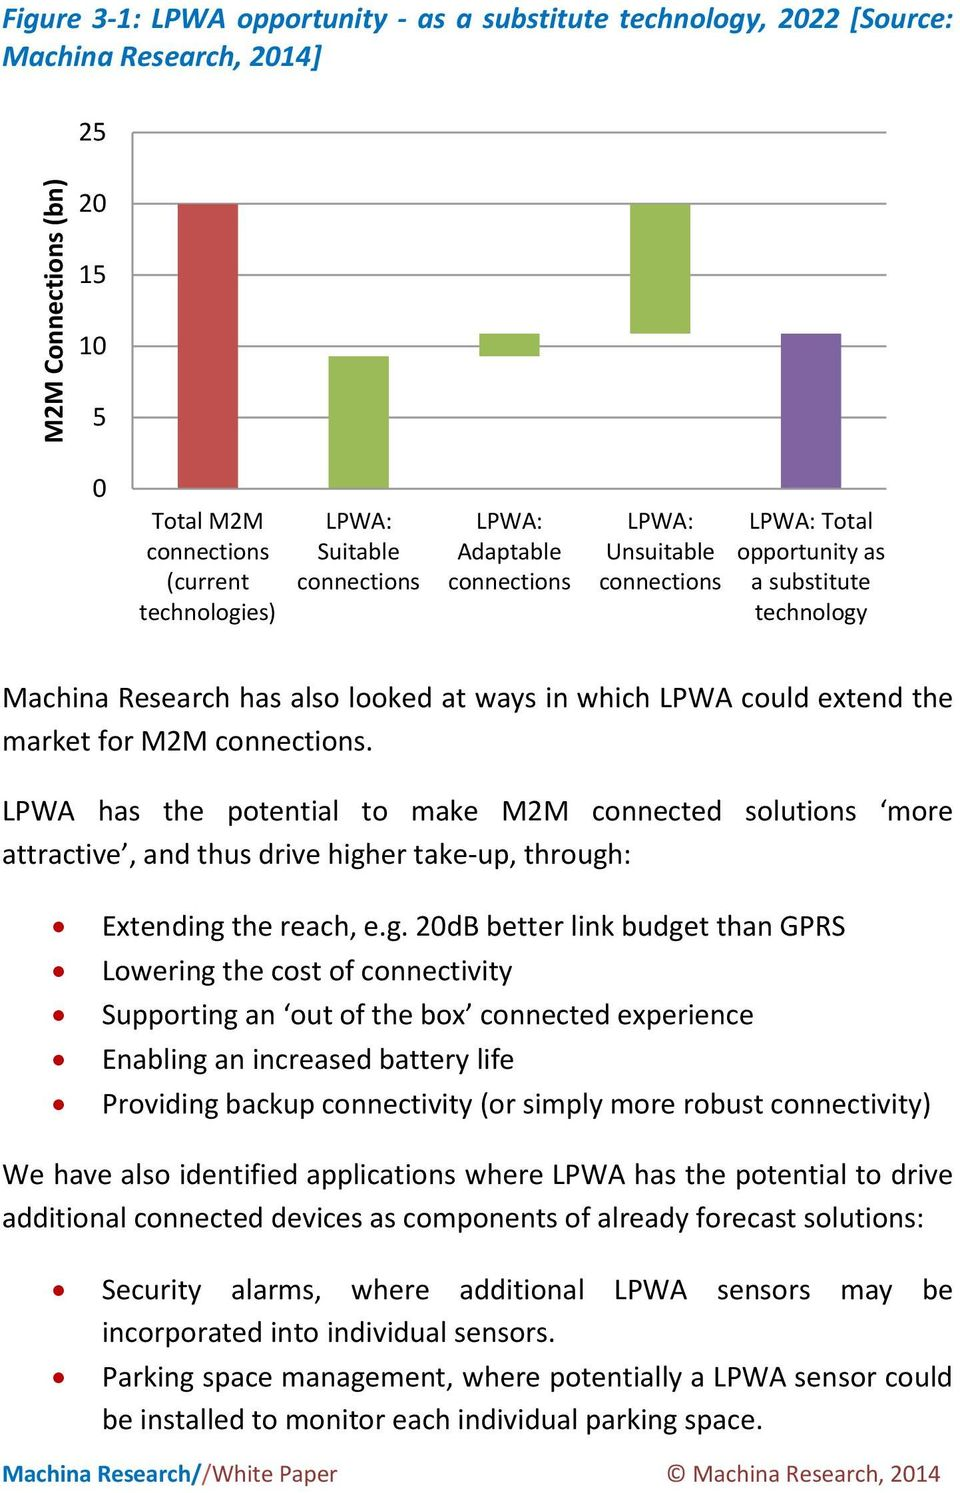 for M2M connections. LPWA has the potential to make M2M connected solutions more attractive, and thus drive high